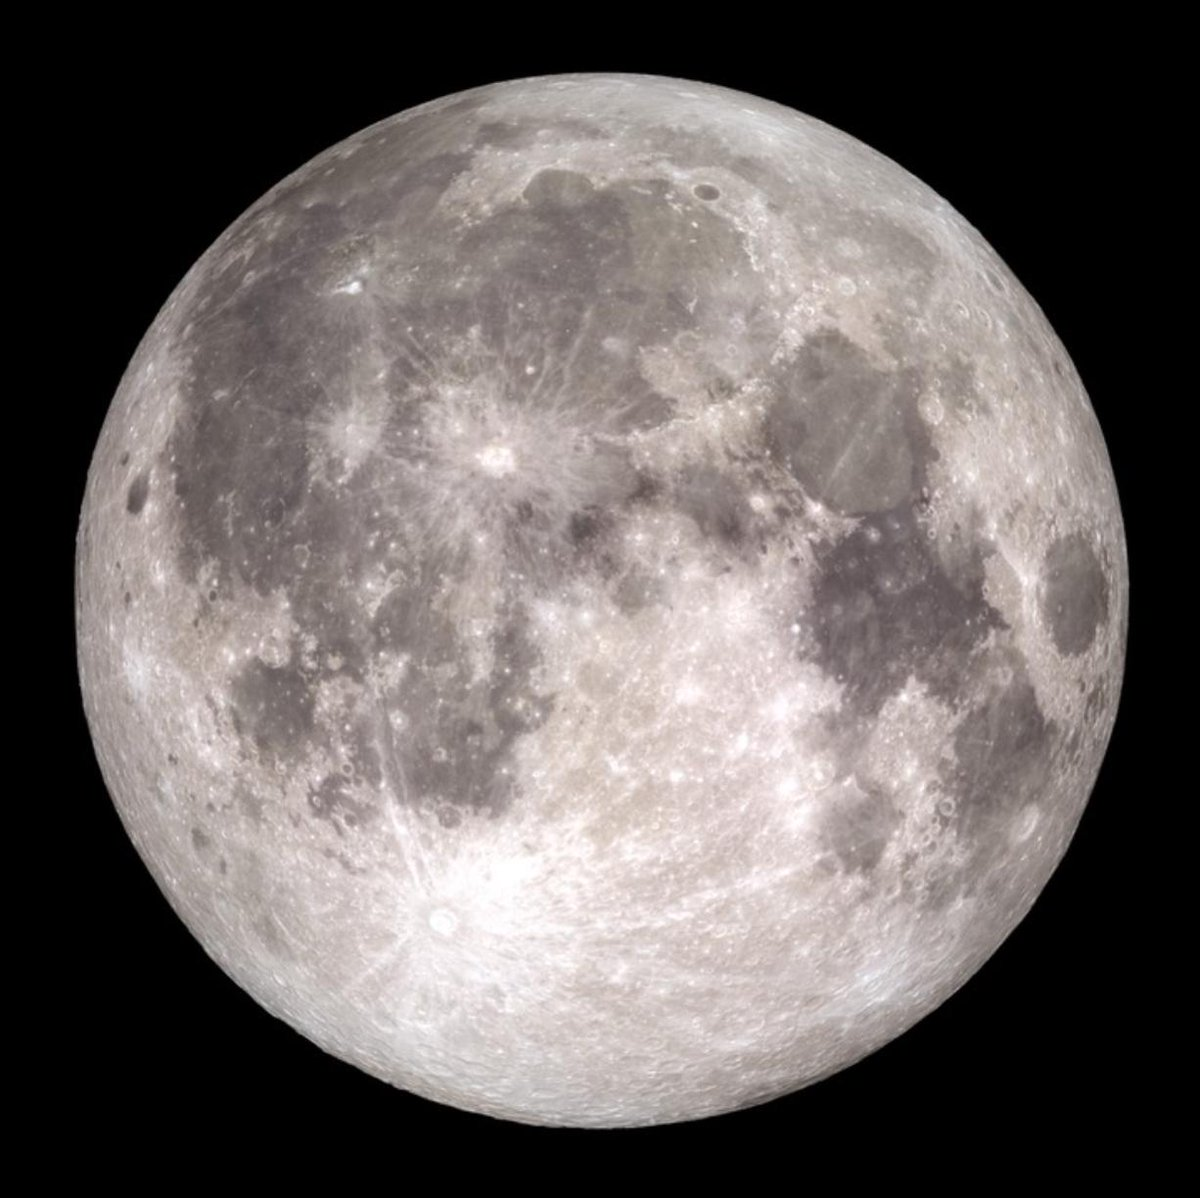 The August full Moon is known as the Sturgeon Moon. It also corresponds with the Hindu festival Raksha Bandhan, the Sri Lankan Nikini Poya holiday, and the Chinese Ghost Festival. go.nasa.gov/2N3wh9z